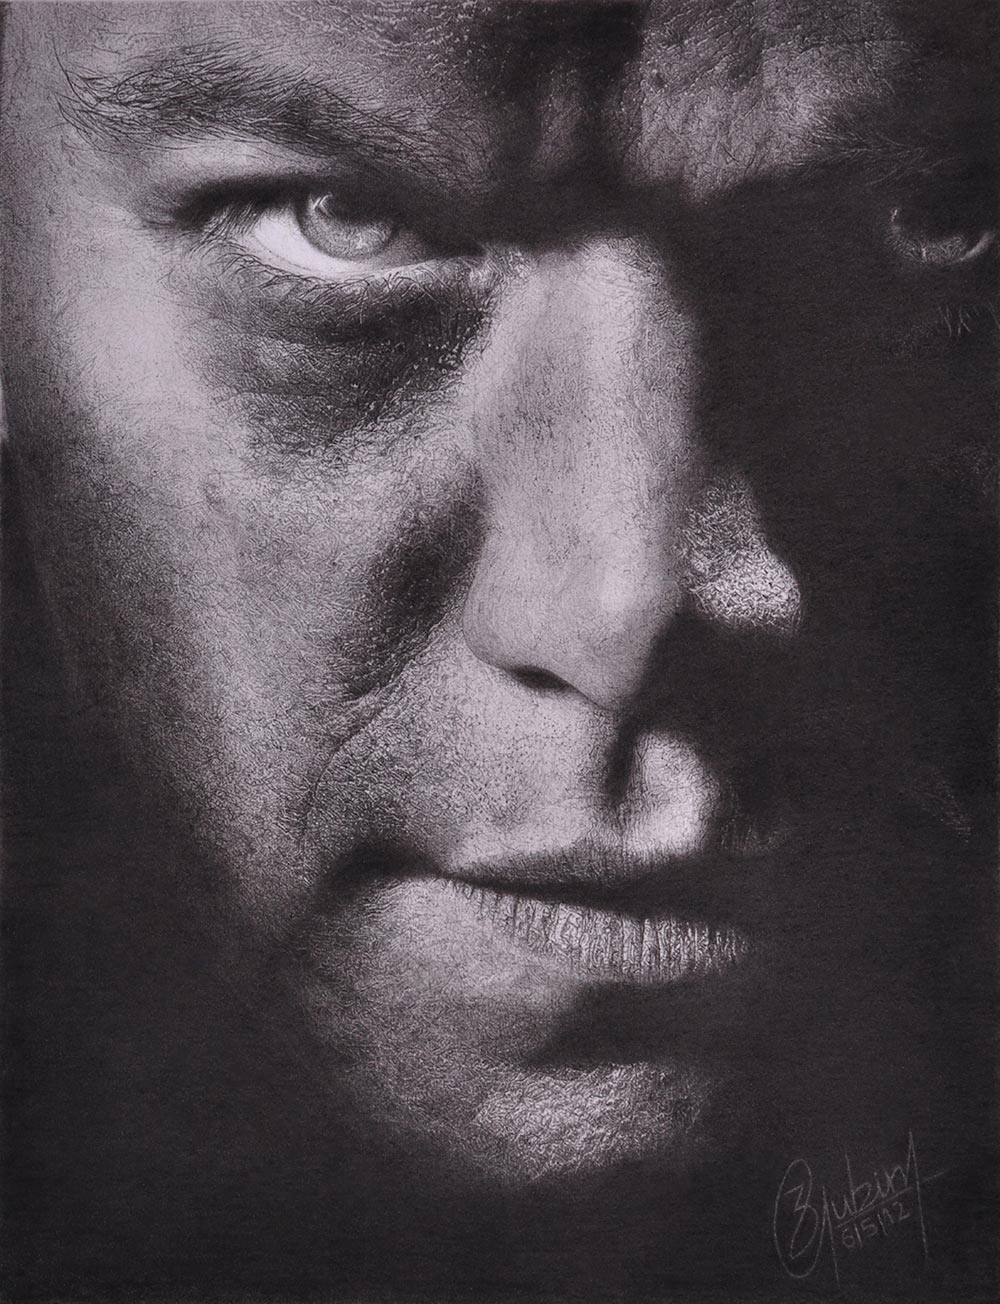 2.Photorealistic charcoal portrait  of Matt Damon's character Jason Bourn